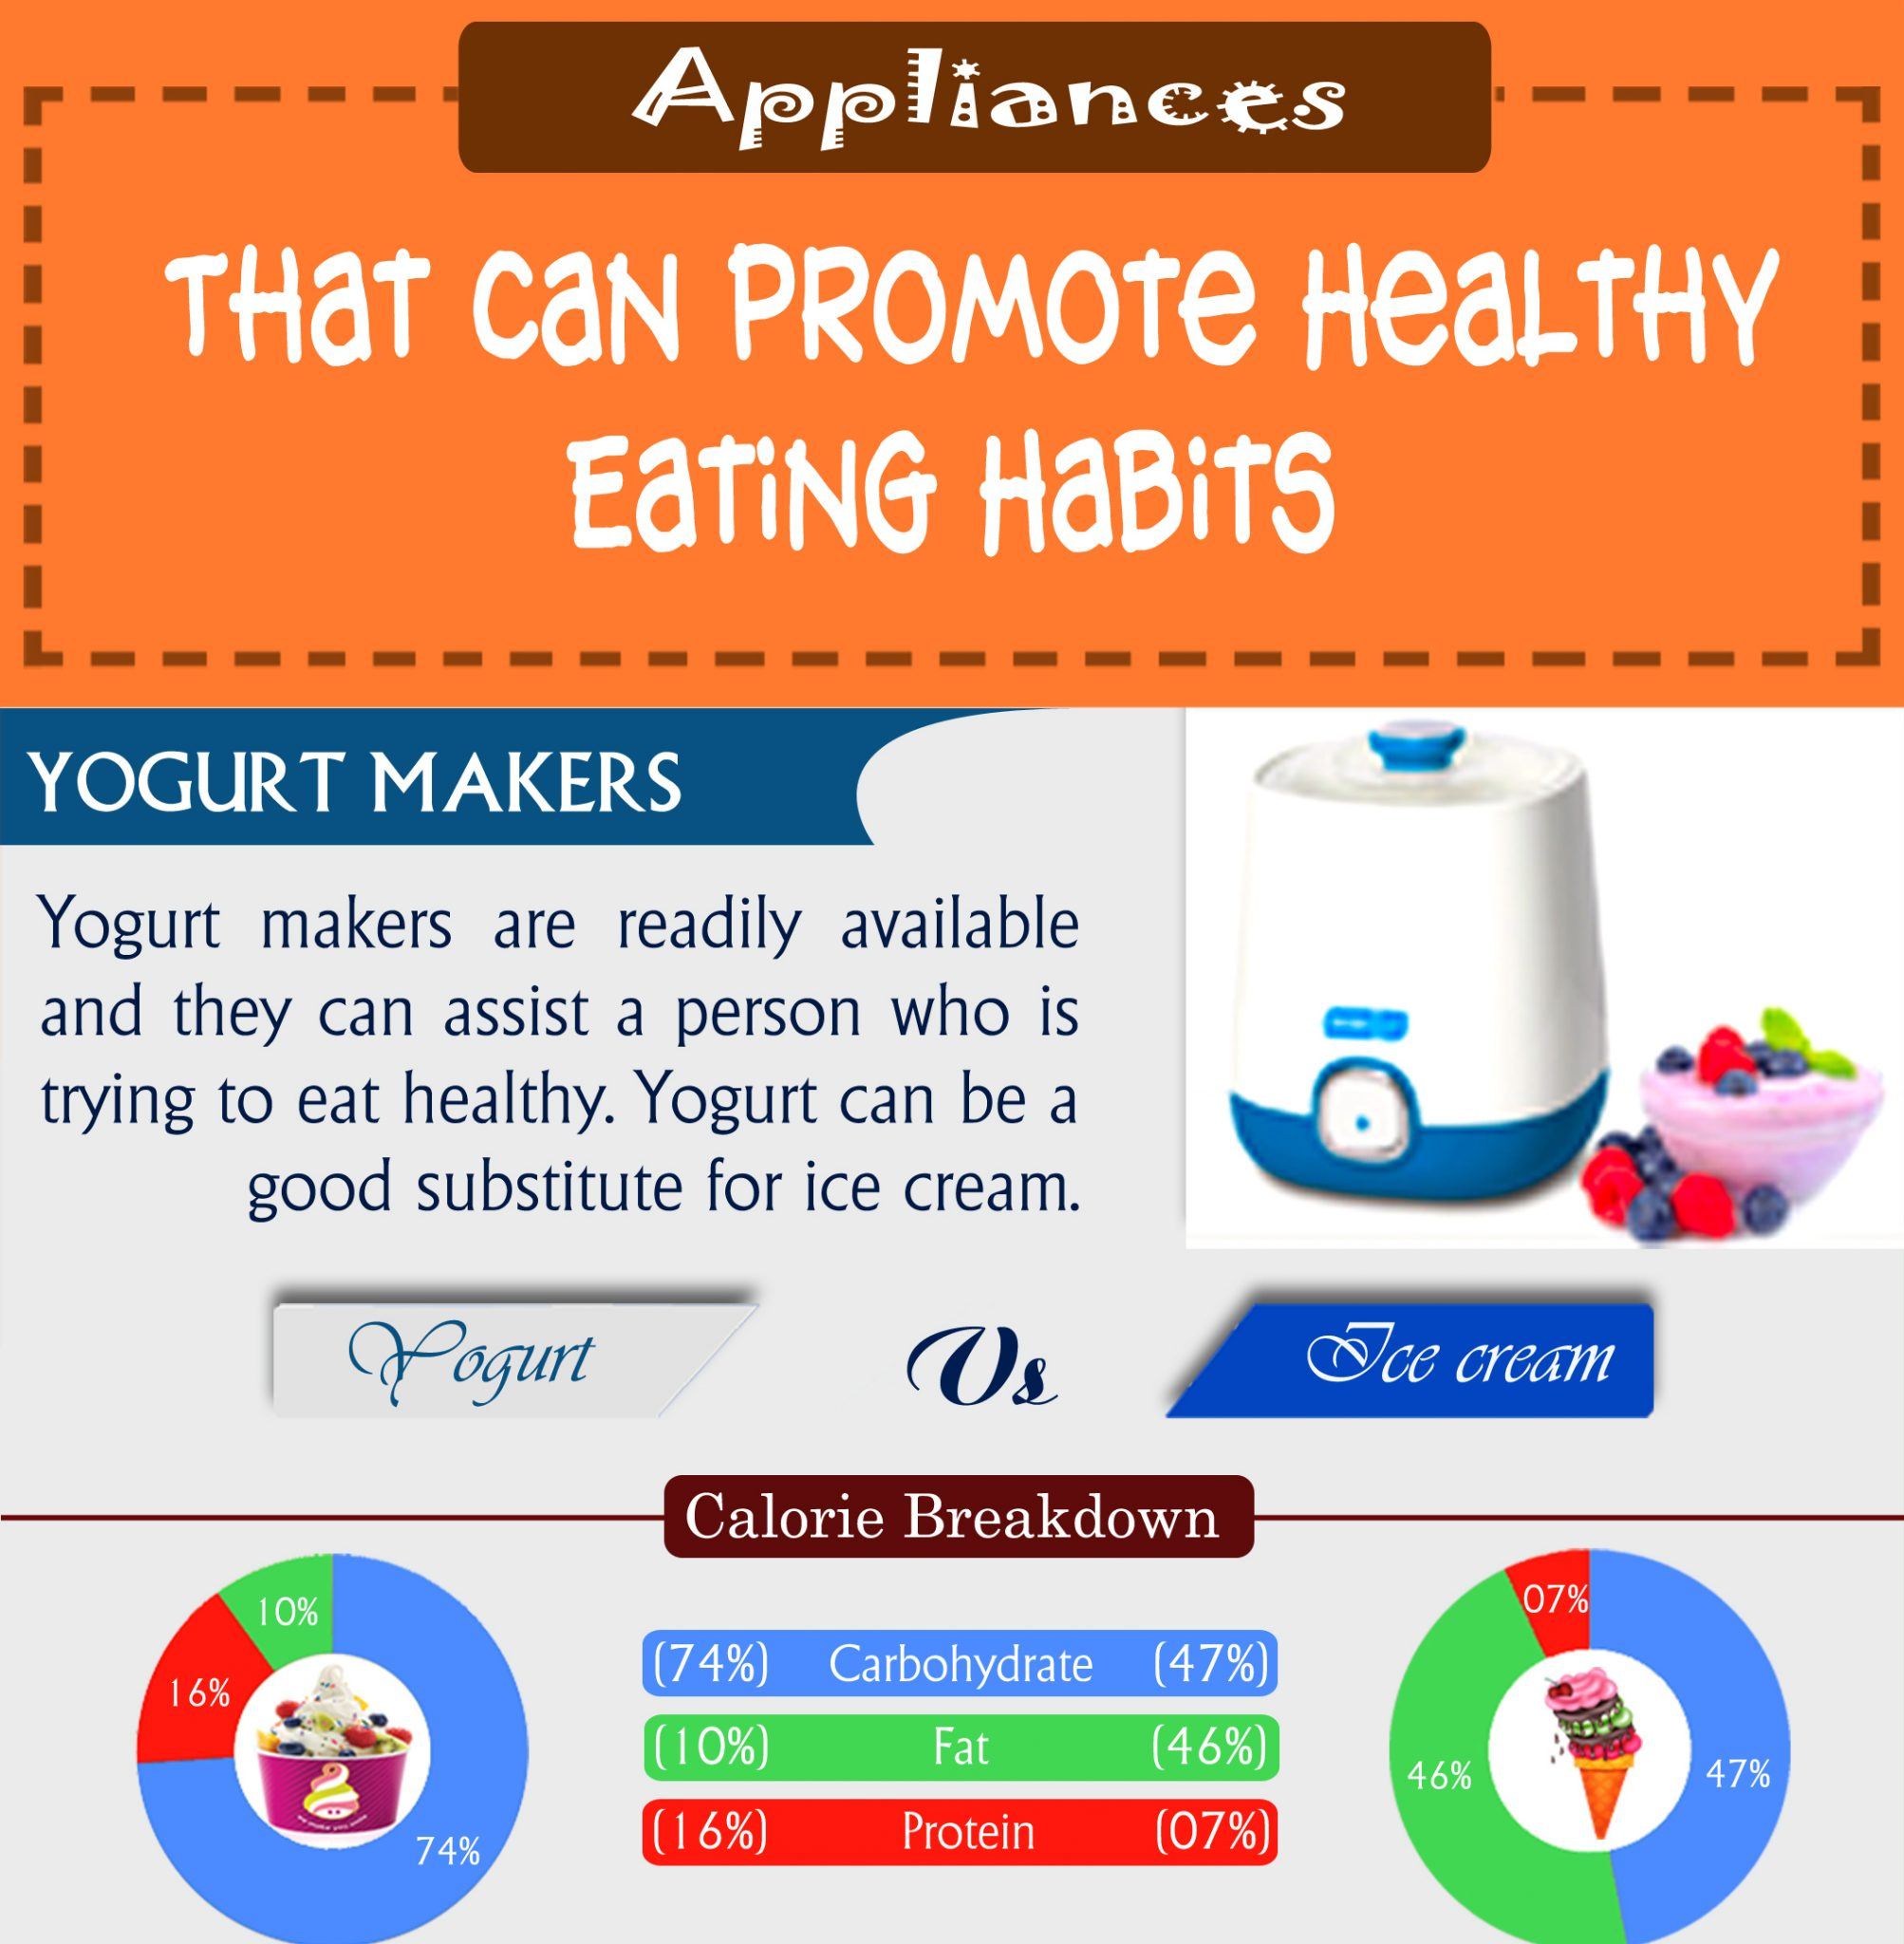 Appliances That Can Promote Healthy Eating Habits - infographic